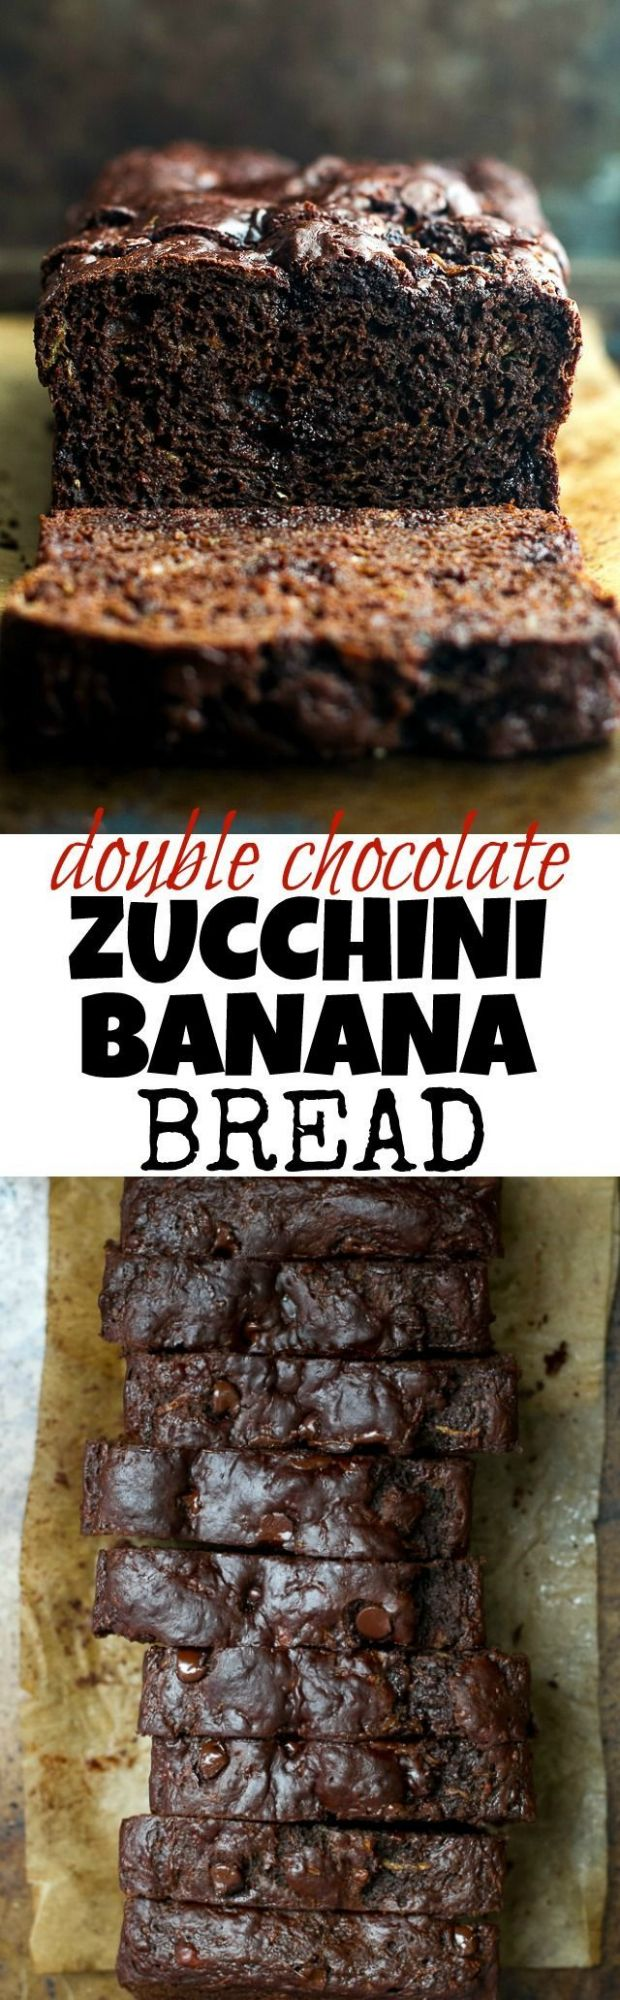 Double Chocolate Zucchini Banana Bread - Recipe Chocolate Zucchini Banana Bread